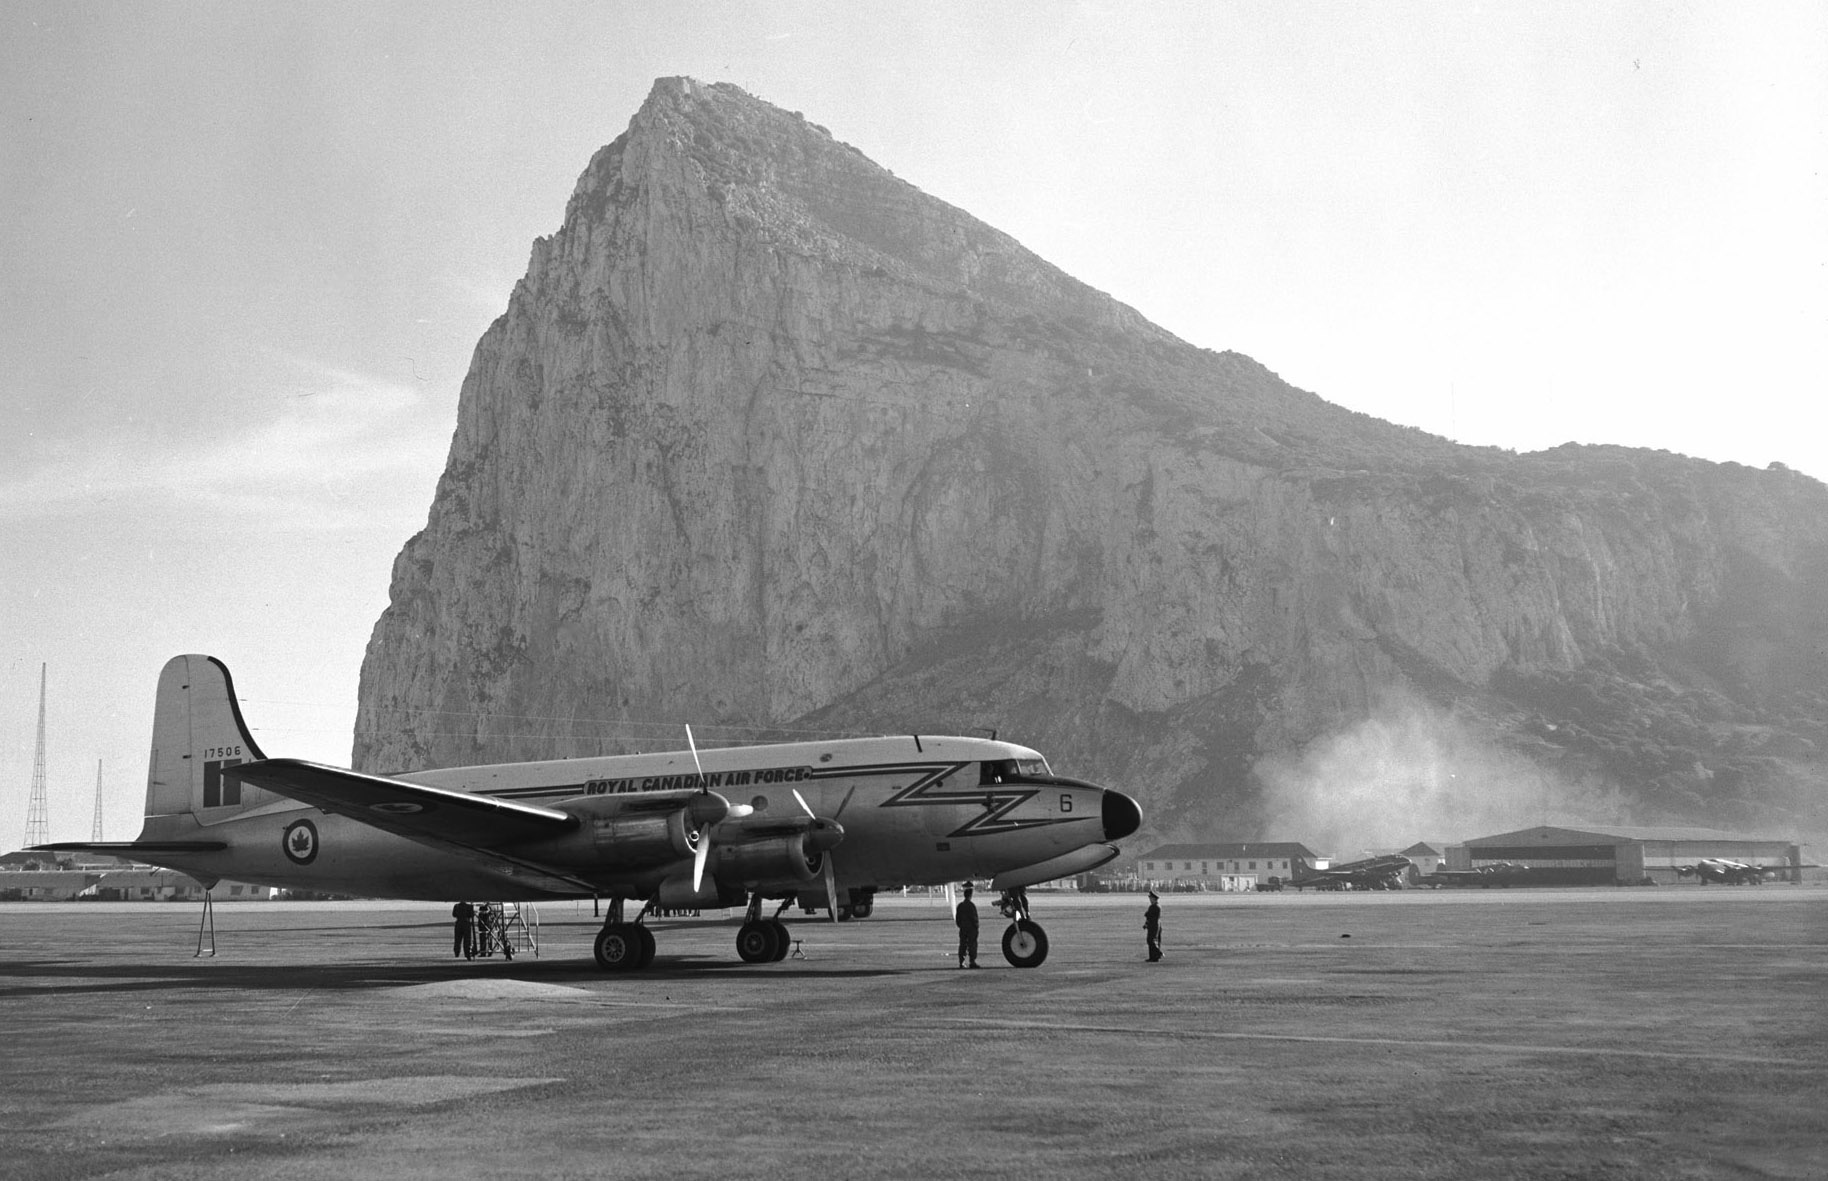 A North Star from the RCAF's Air Transport Command rests on the runway at Gibraltar. PHOTO: DND Archives, PL-107404